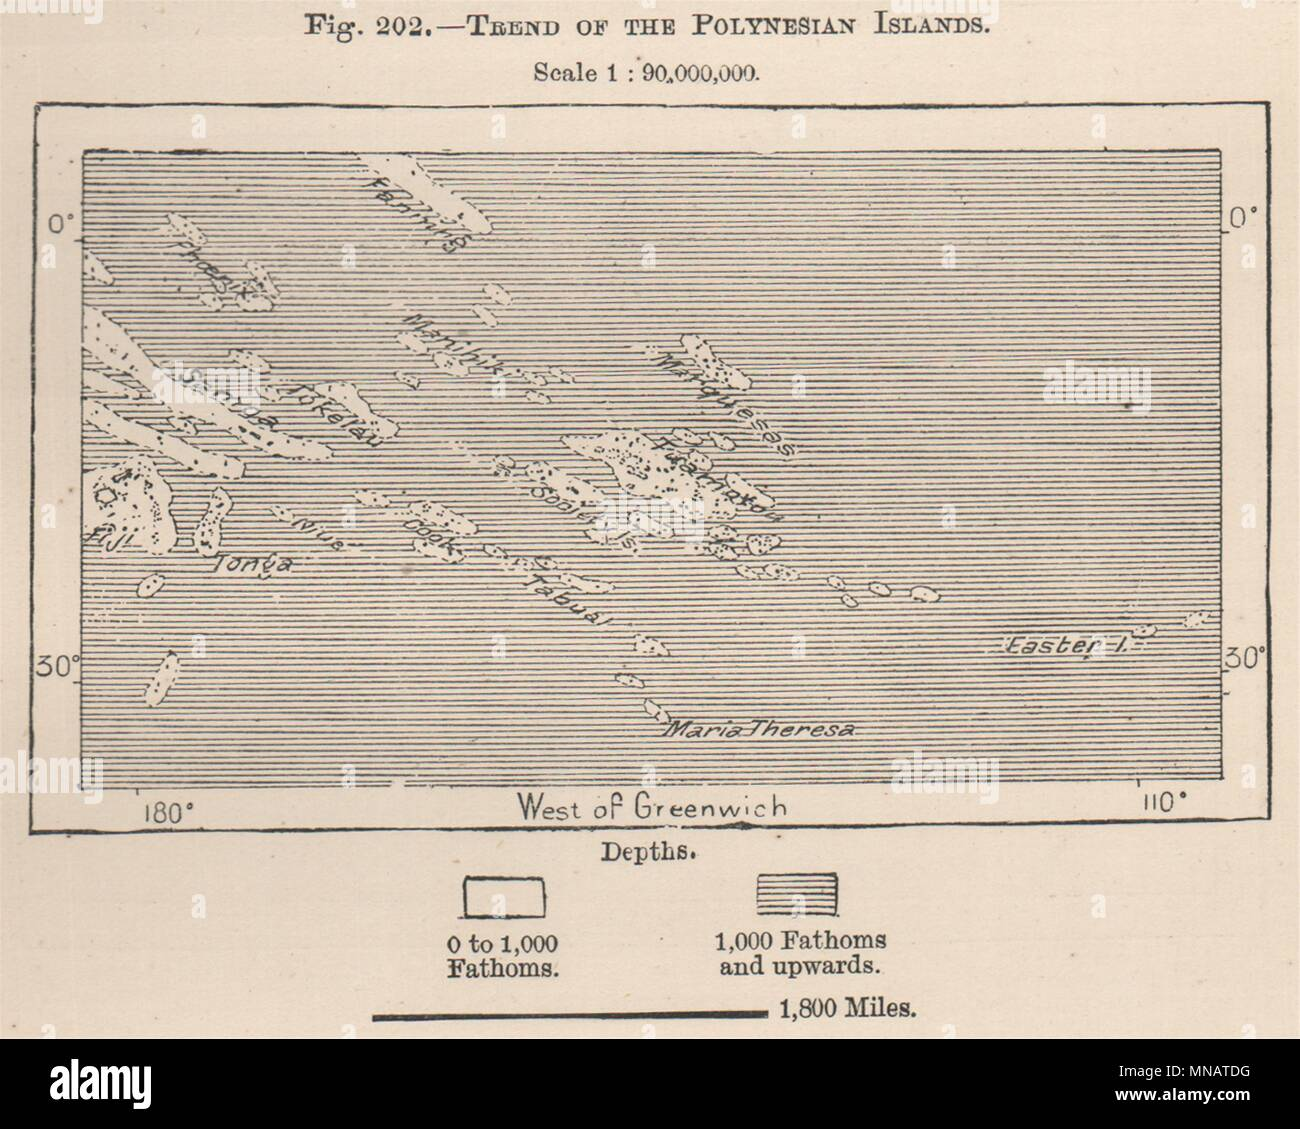 South Pacific Islands Map Stock Photos & South Pacific Islands Map ...